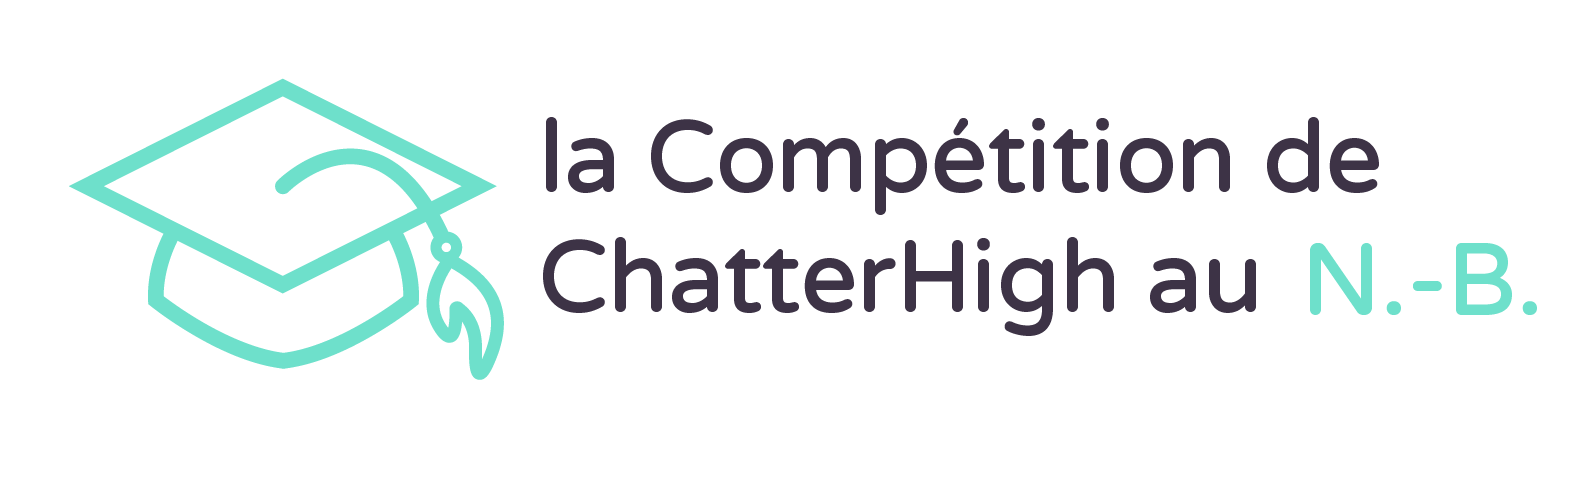 FRENCH NB ChatterHigh Competition